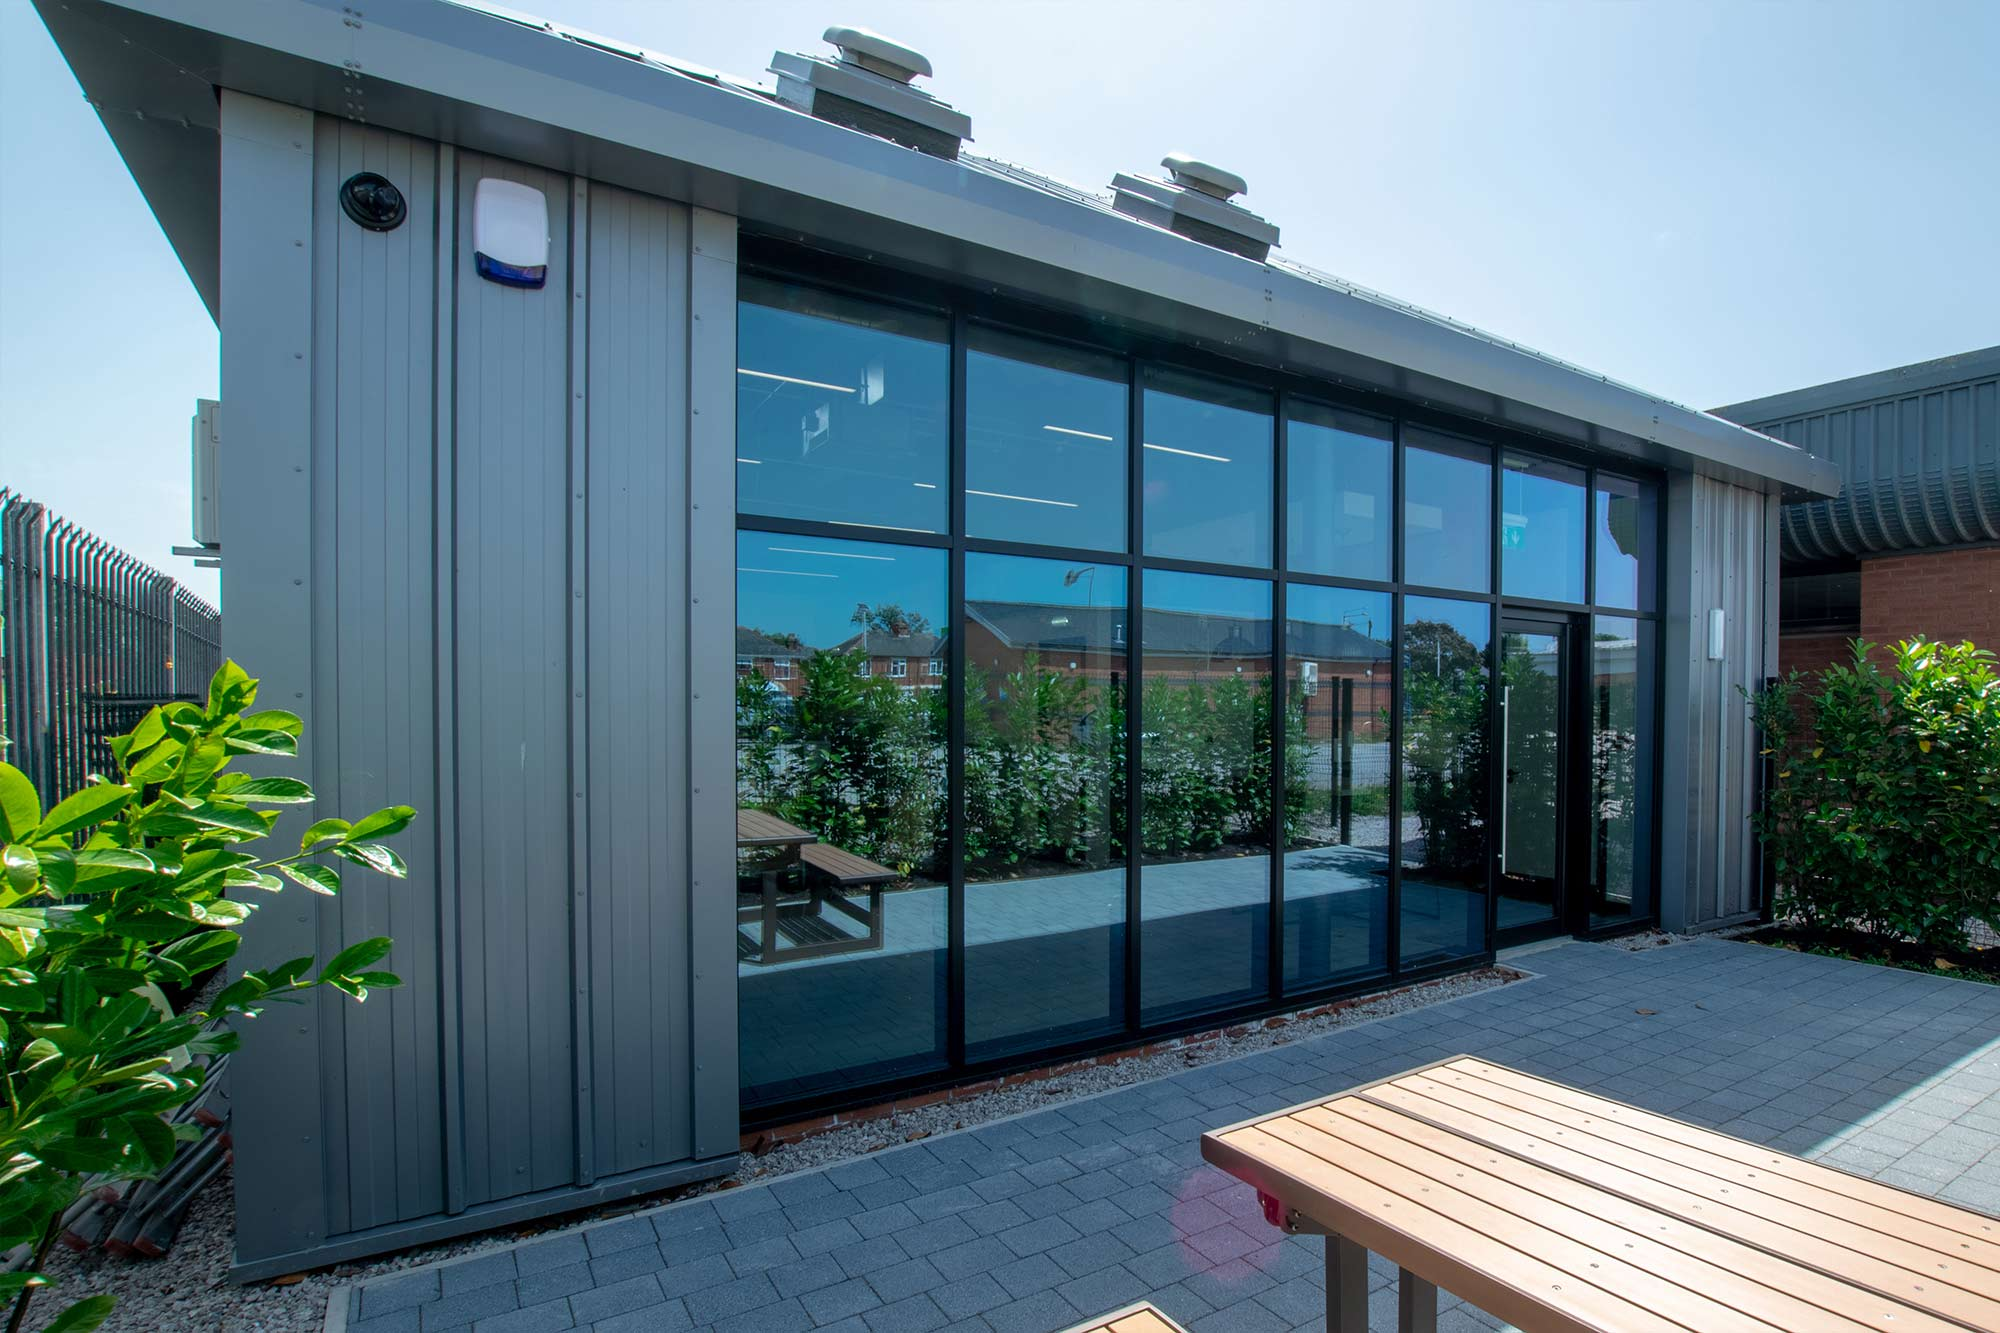 Retail showroom and warehouse architectural design in Lytham St'Annes, Lancashire